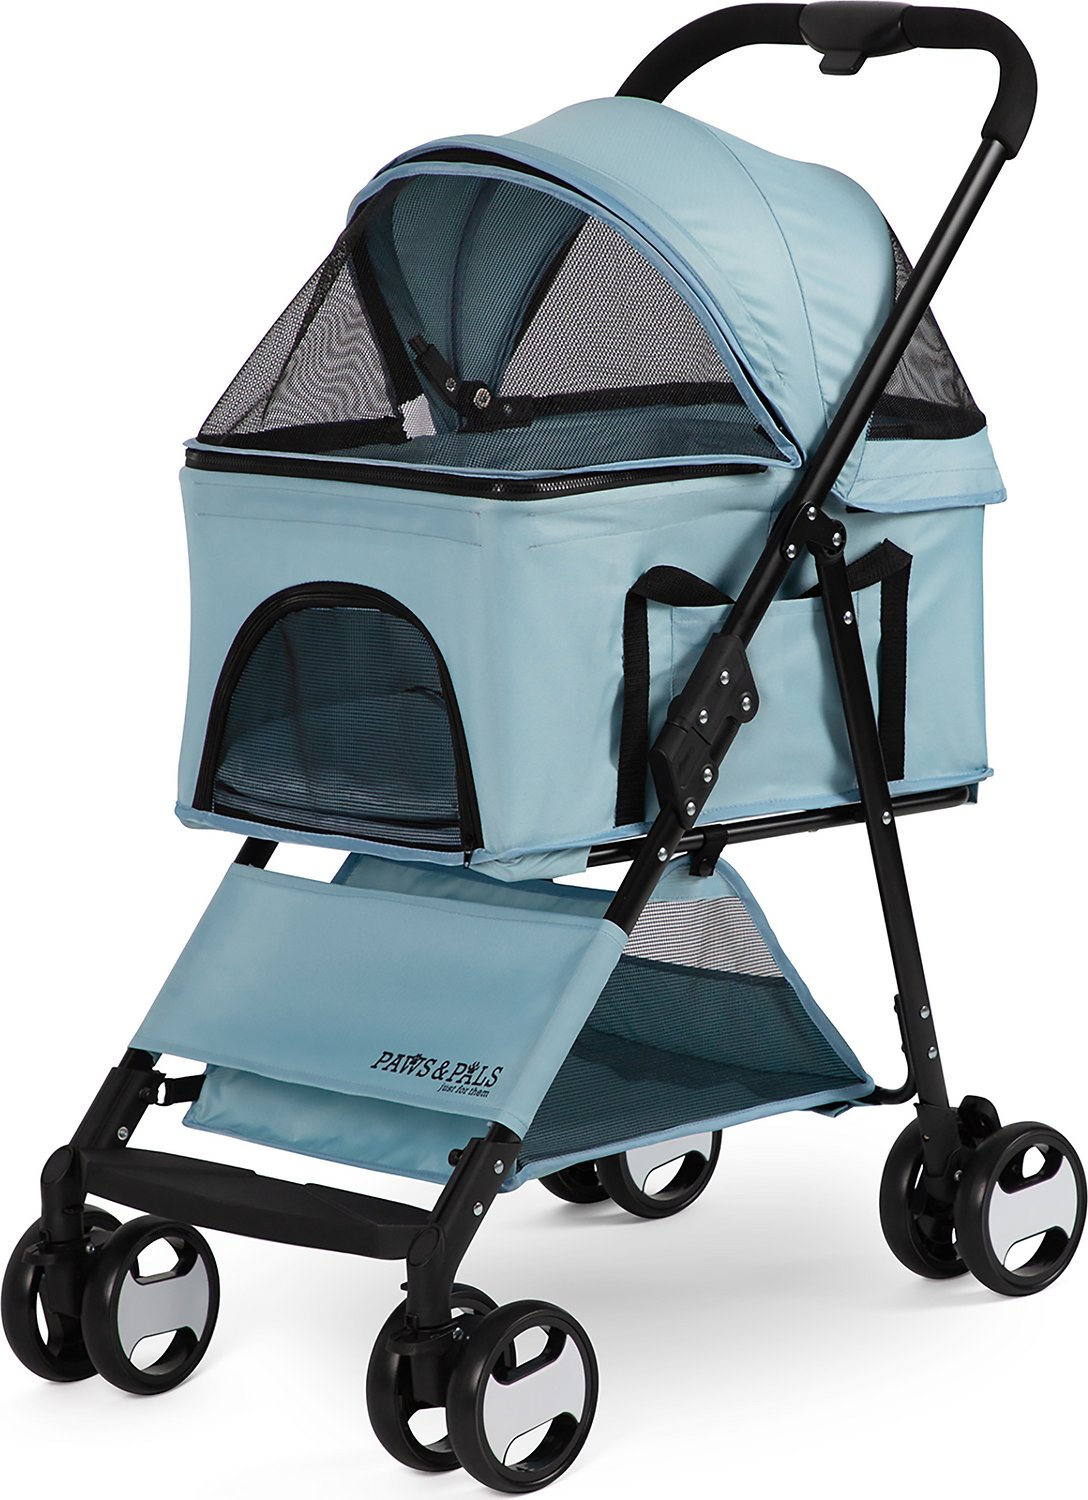 Paws Pals 2 In 1 Detachable Dog Cat Stroller Carrier Blue Chewy Com